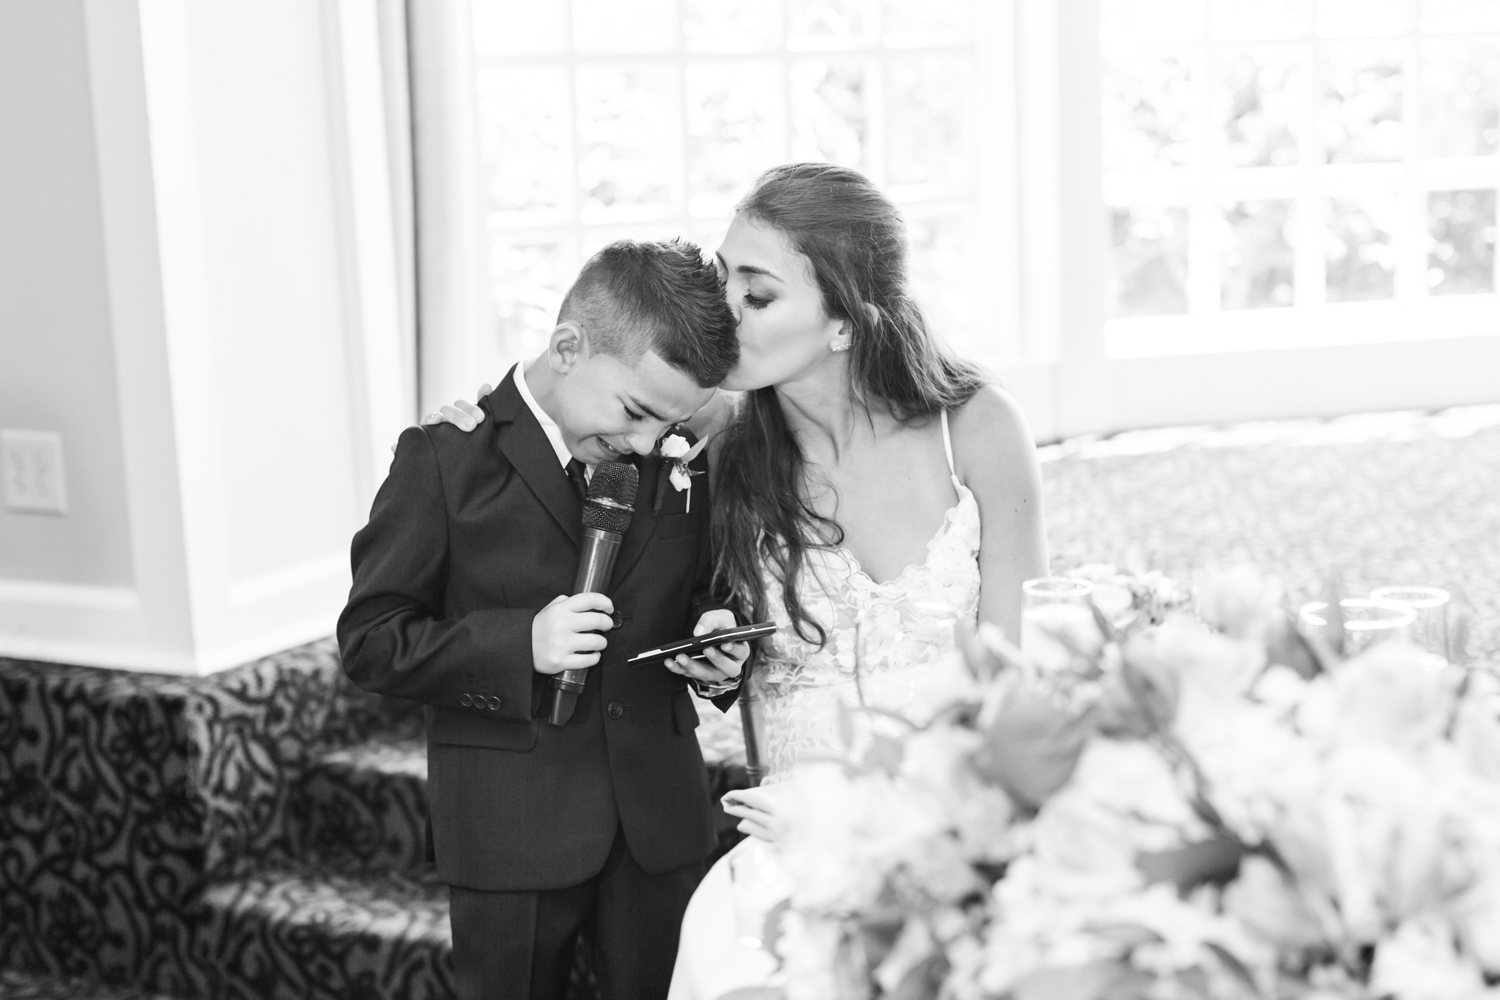 the-inn-at-longshore-wedding-westport-connecticut-photographer-mariah-alexi-shaina-lee-photography-photo